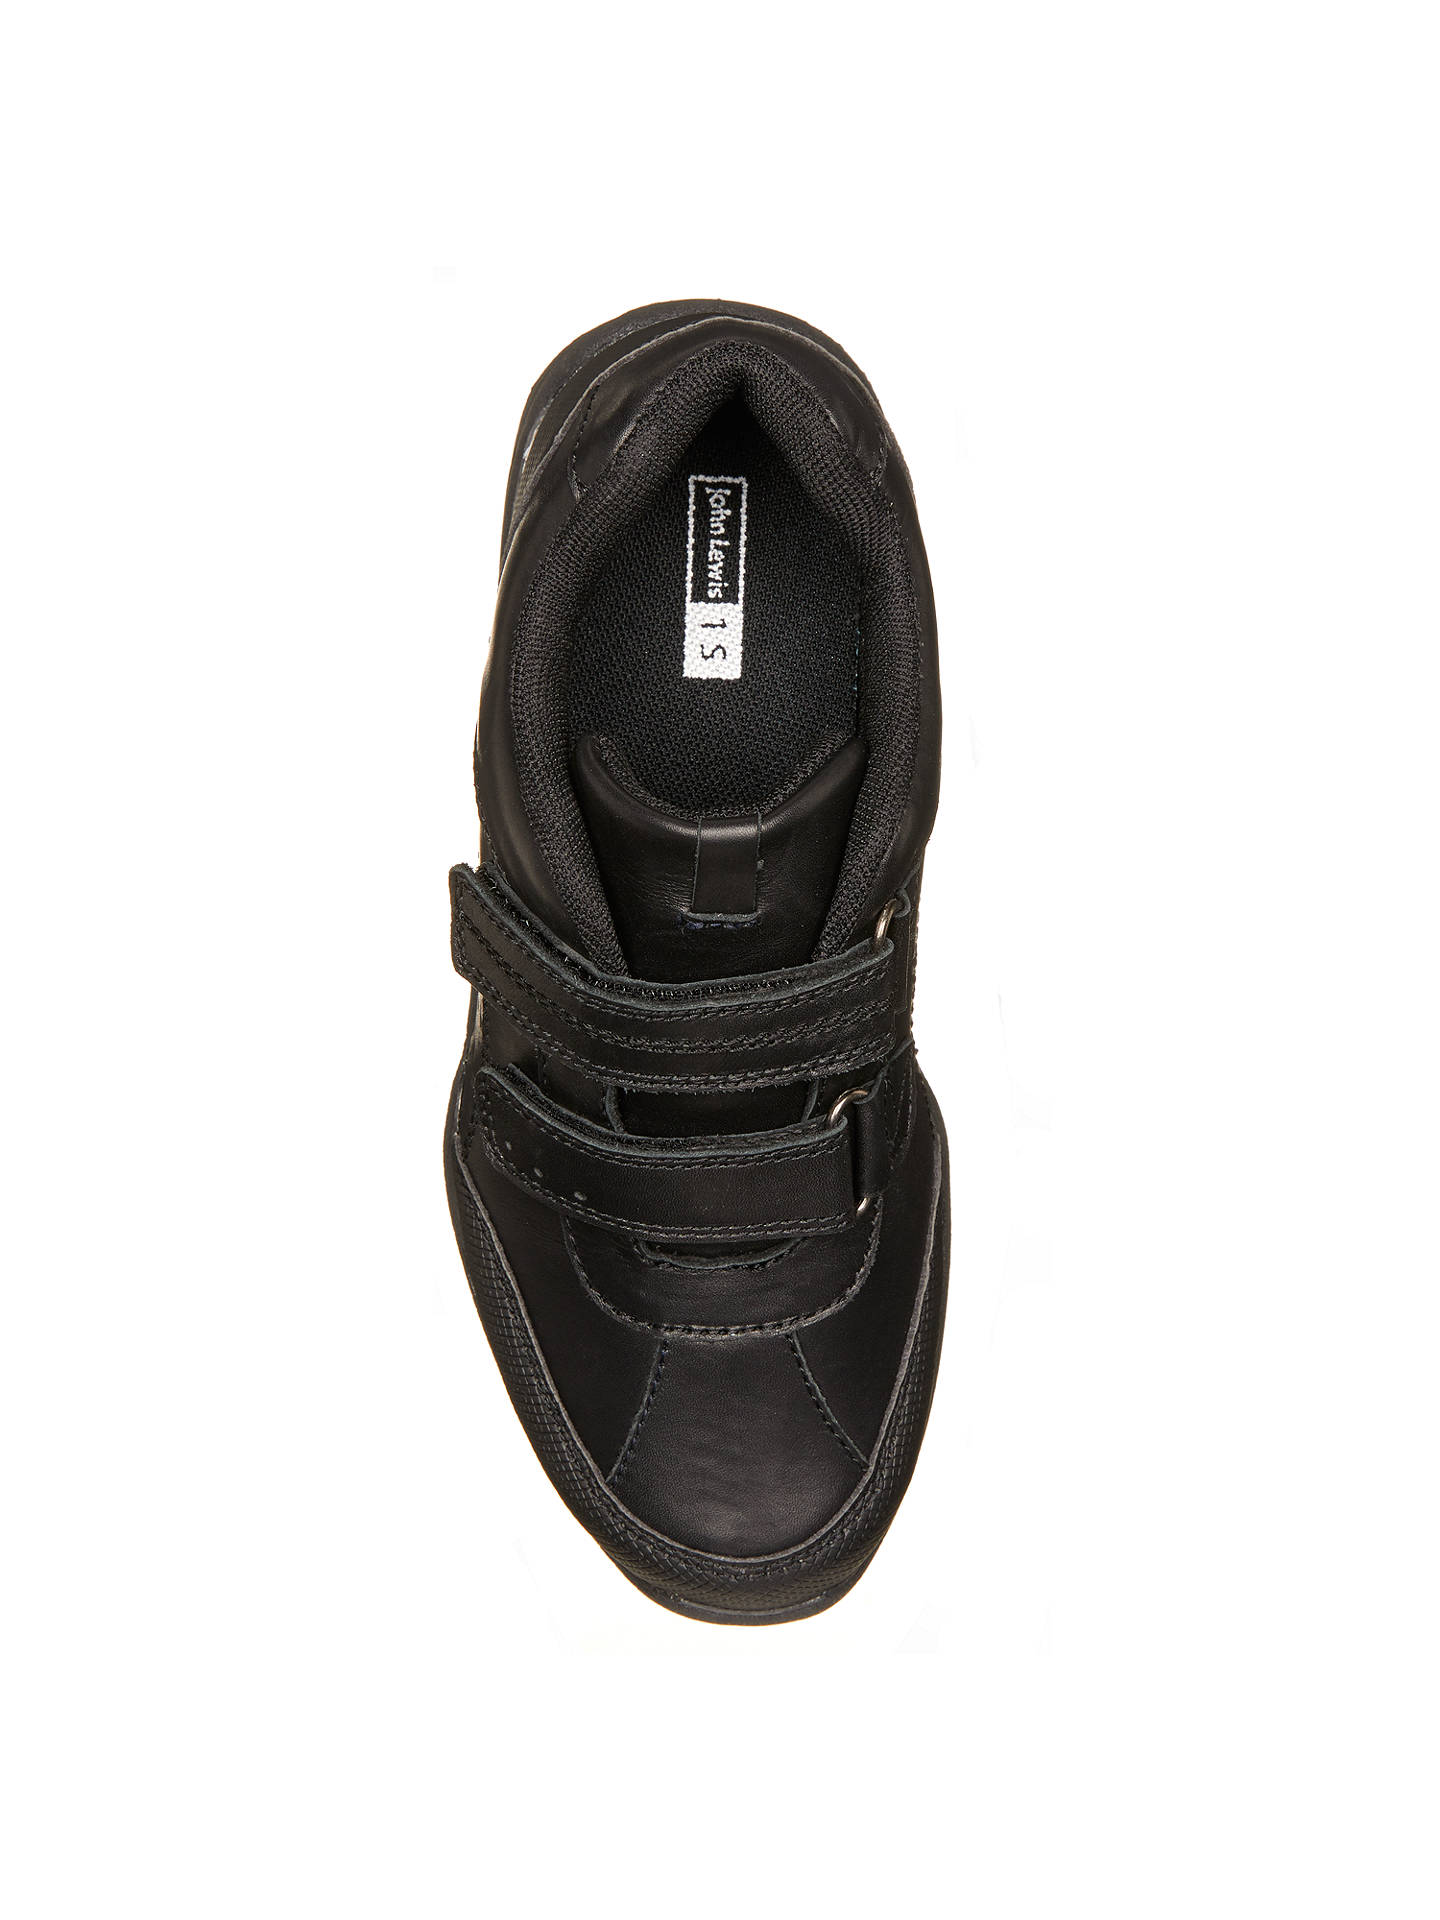 Buy John Lewis & Partners Children's Kent Double Riptape Shoes, Black, 10W Jnr Online at johnlewis.com